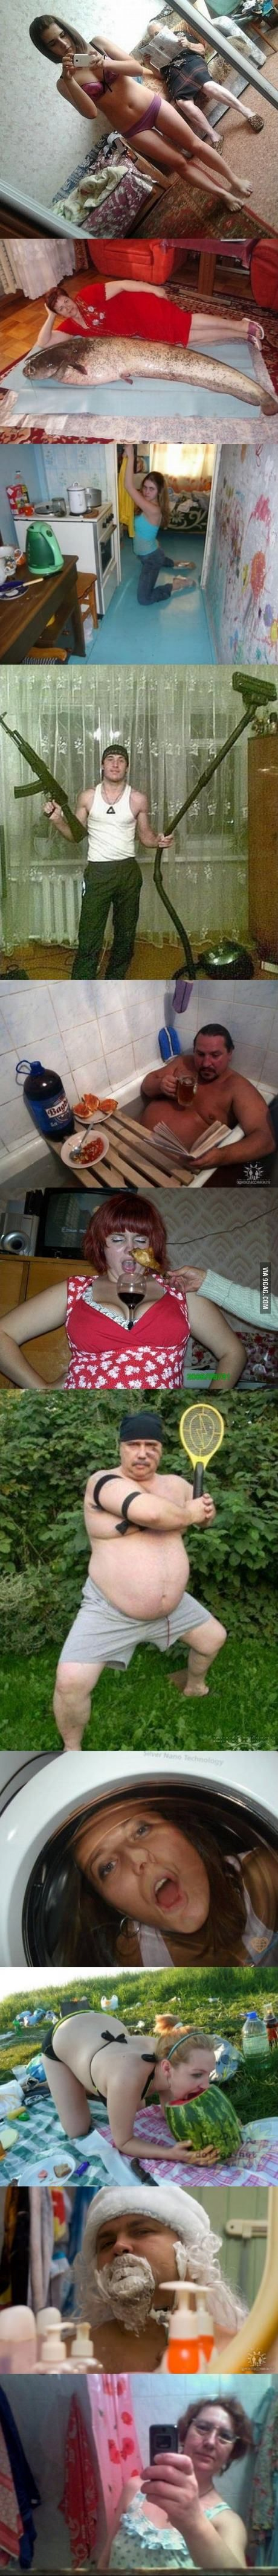 The Best Russian Dating Ideas On Pinterest How Old Is - 25 hilariously unexplainable images